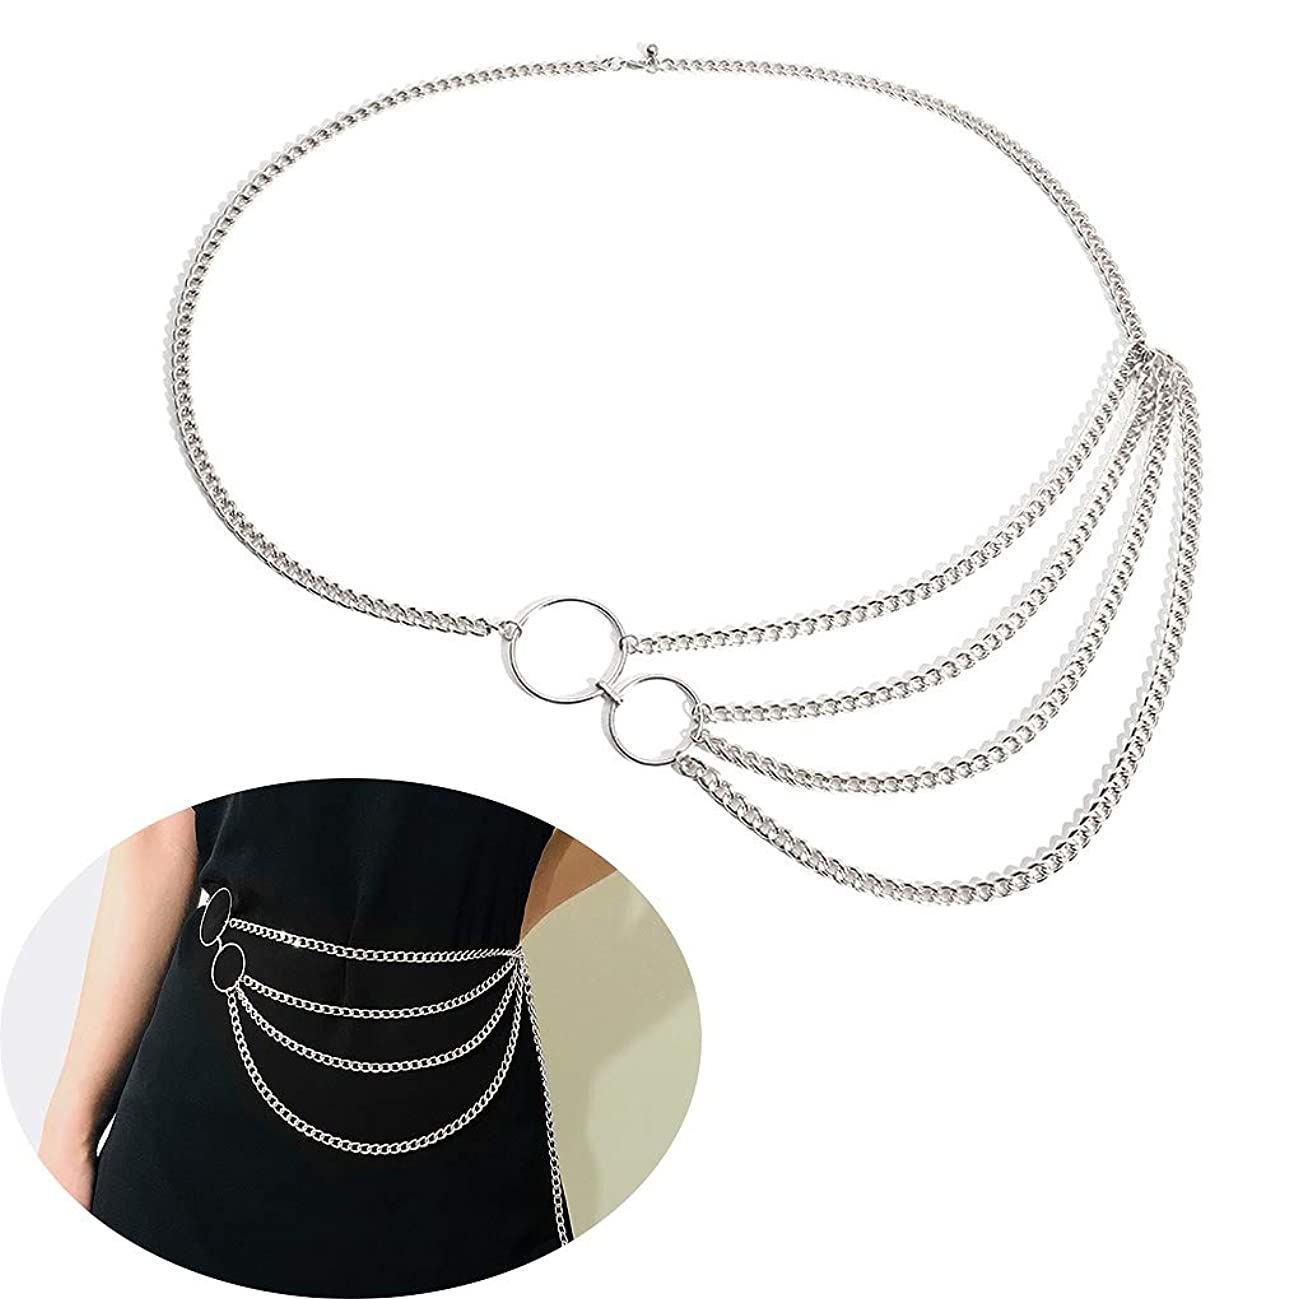 Jurxy Multilayer Alloy Waist Chain Body Chain for Women Waist Belt Pendant Belly Chain Adjustable Body Harness for Jeans Dresses – Silver Style 6